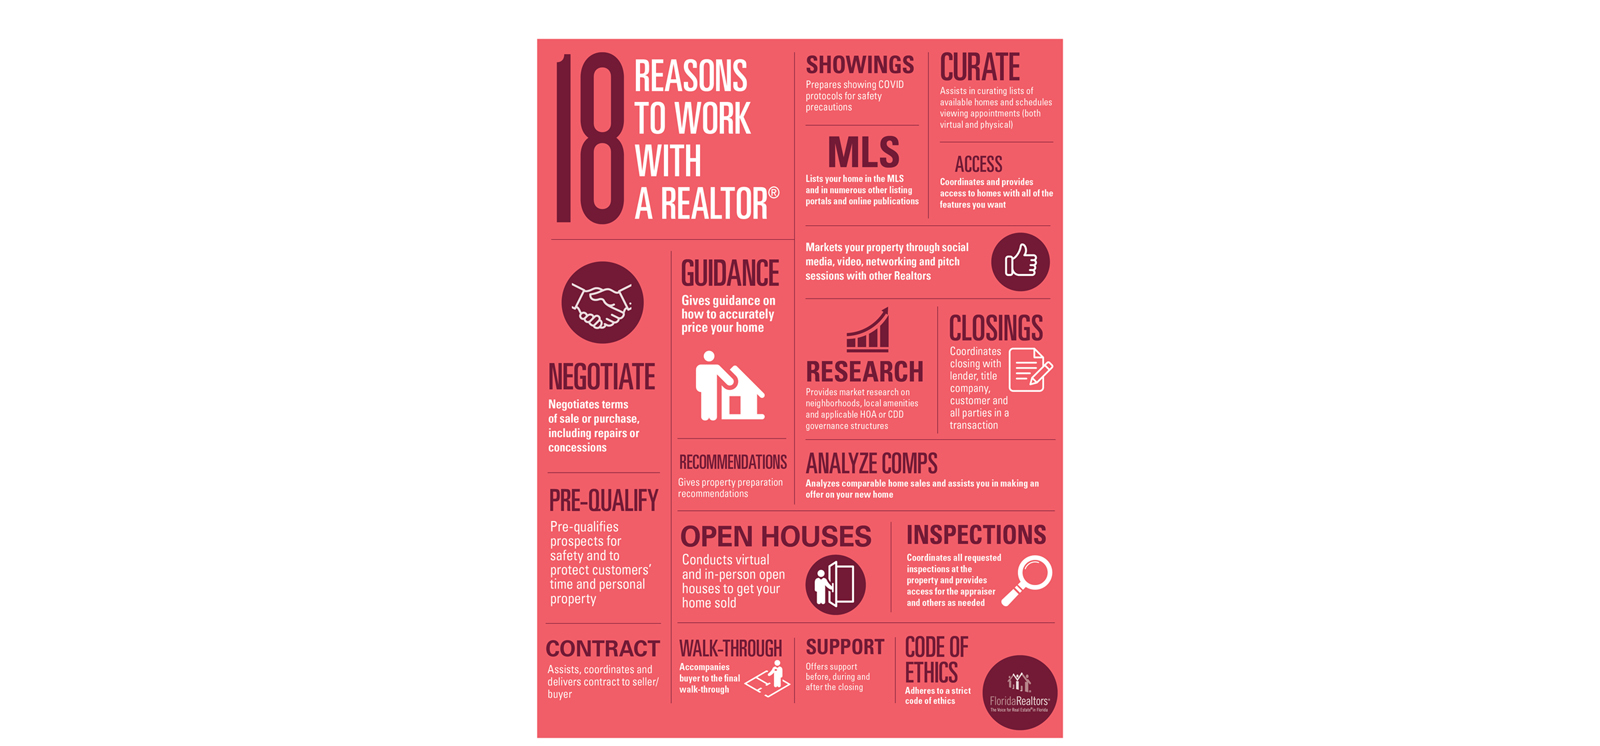 18 Reasons to Work With a Realtor®